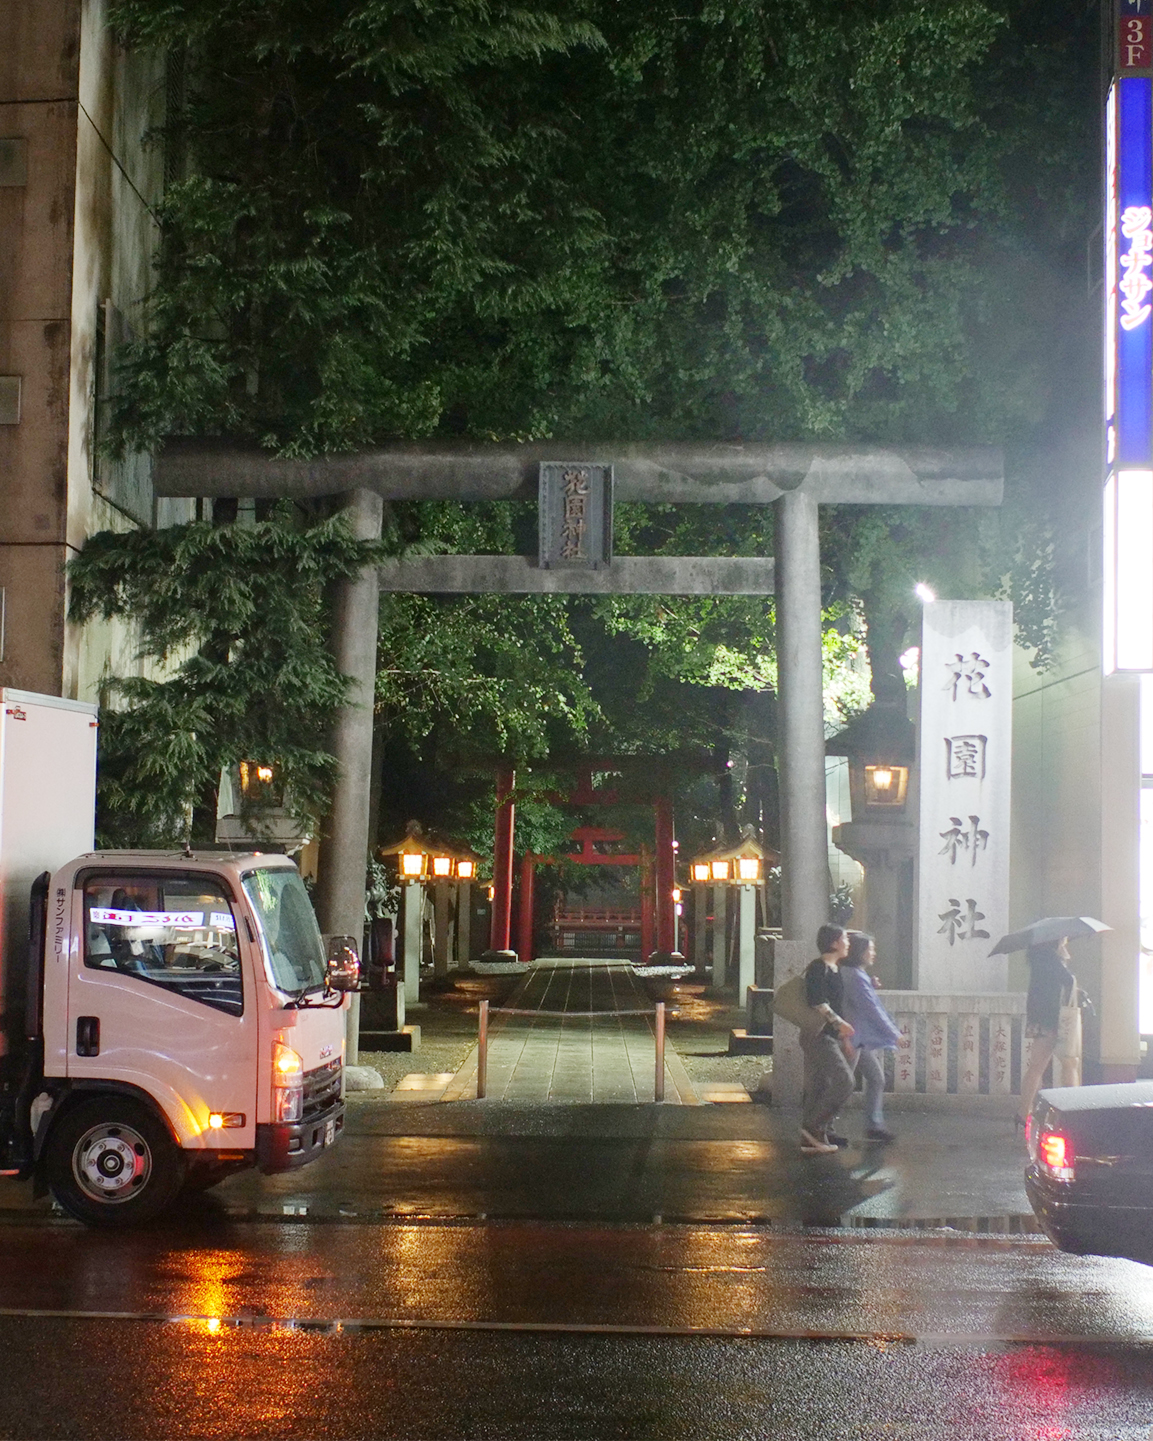 A gateway to a shrine in Tokyo - trees and lanterns sandwiched between an office block and convenience store.